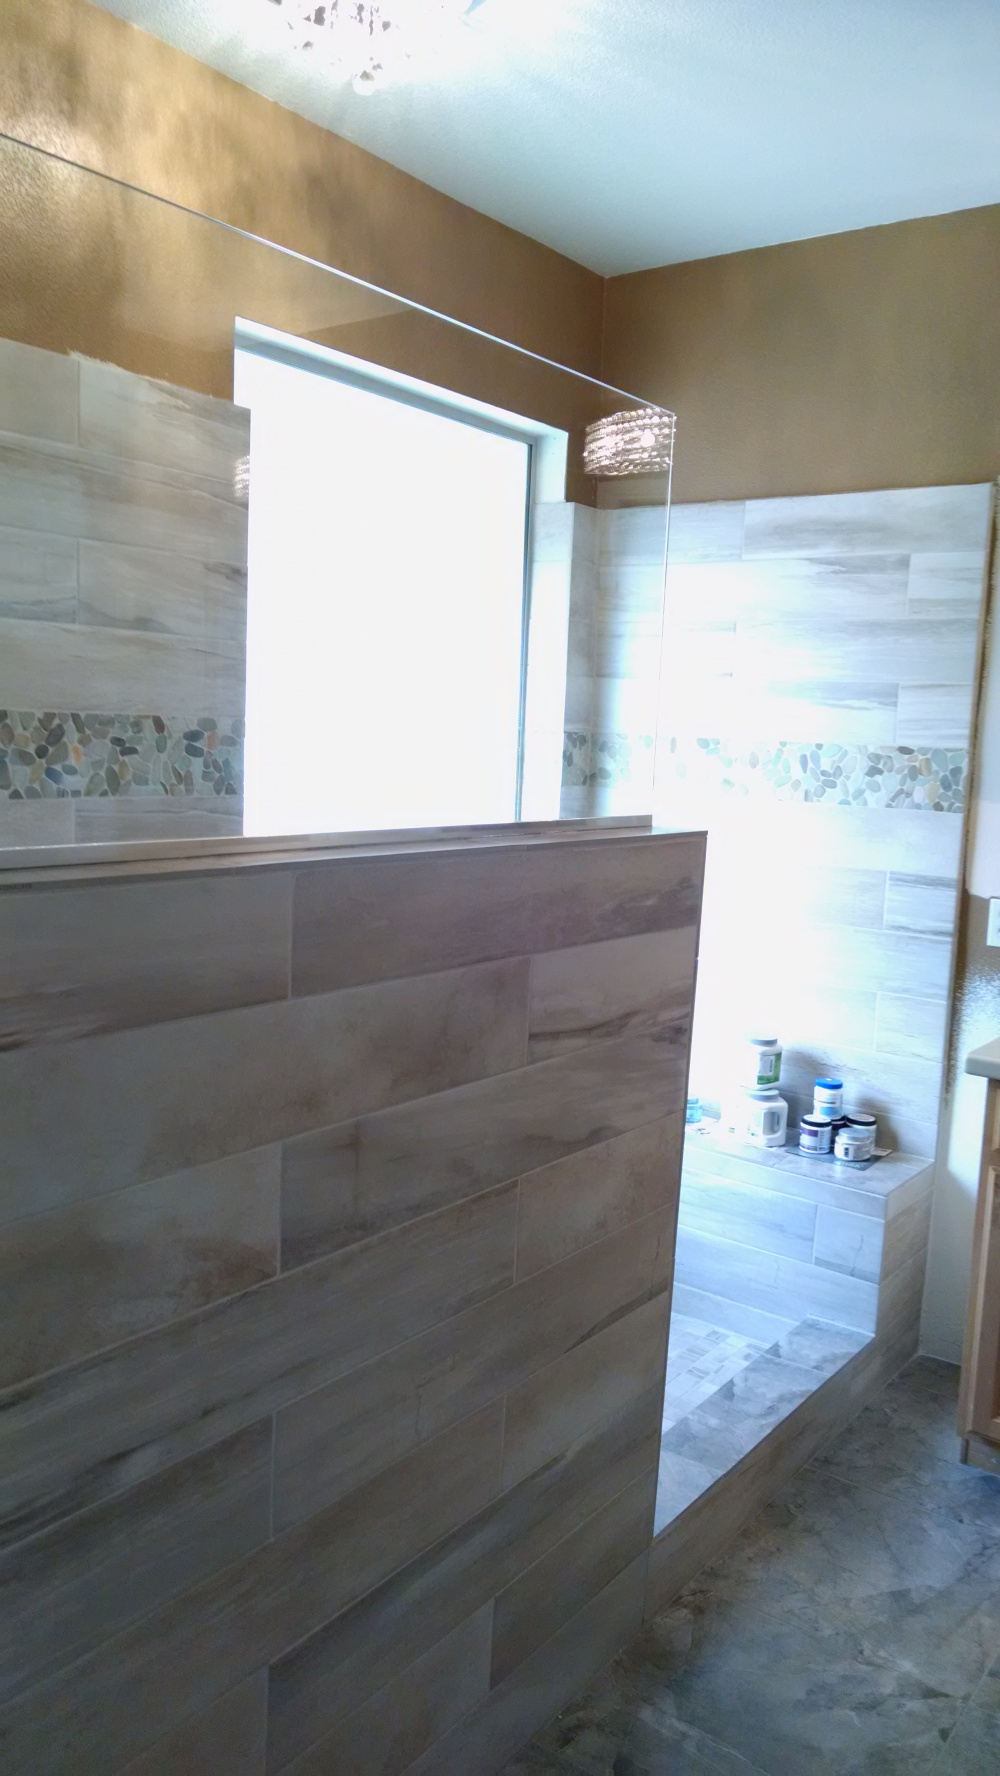 Phoenix Bathroom Remodel Awesome Home Remodeling Phoenix  Champion Remodeling Llc. Review